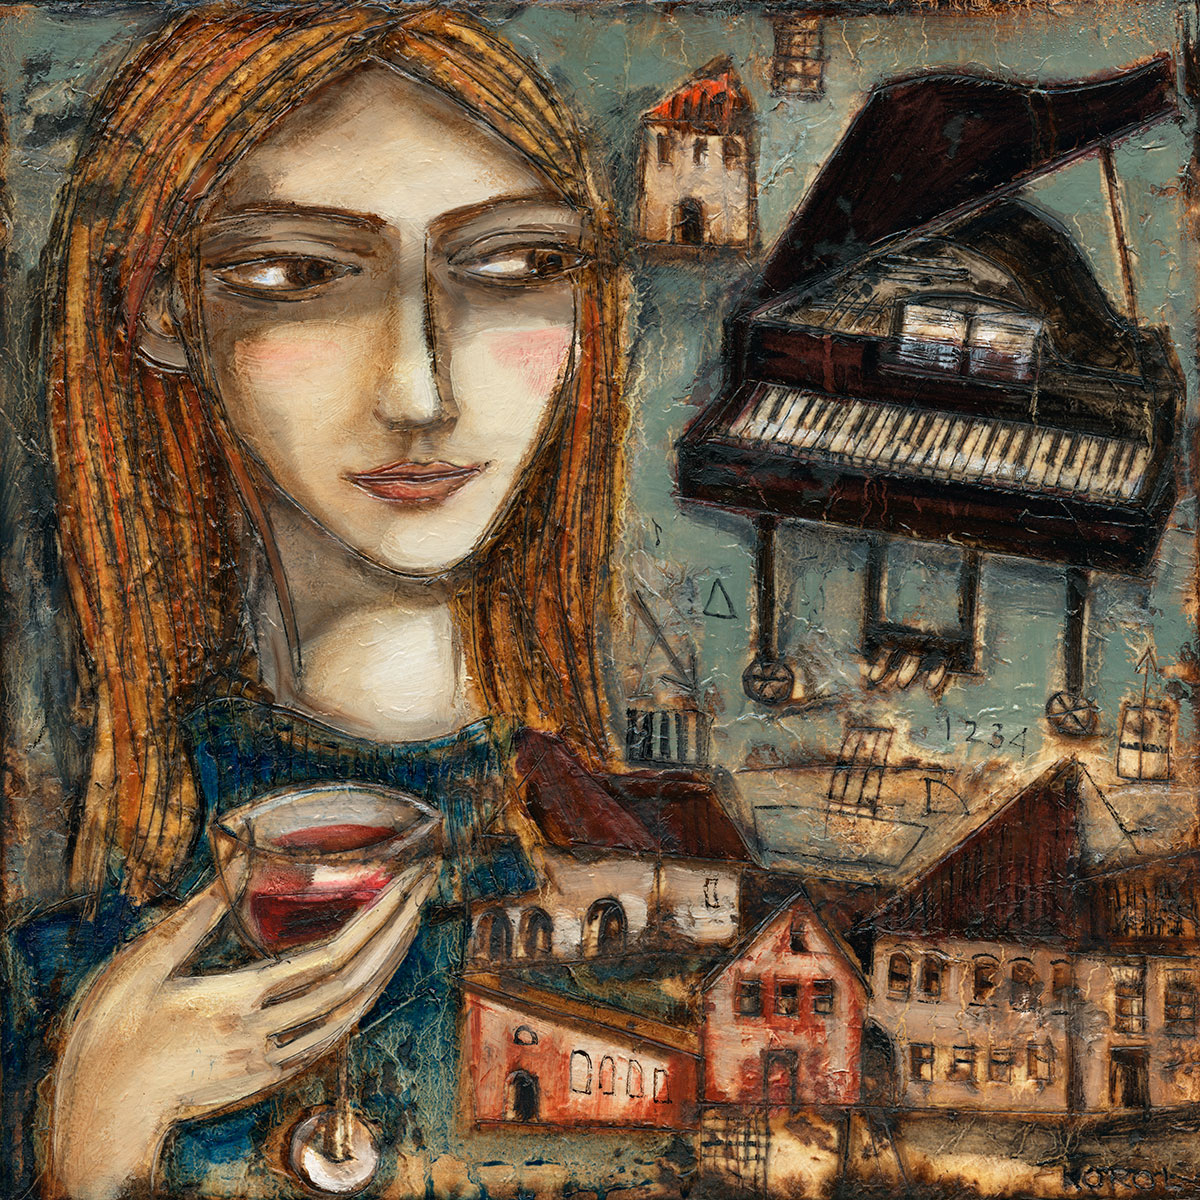 painting of a girl with glass of red wine or cocktail with an image of a grand piano and some buildings in the background.